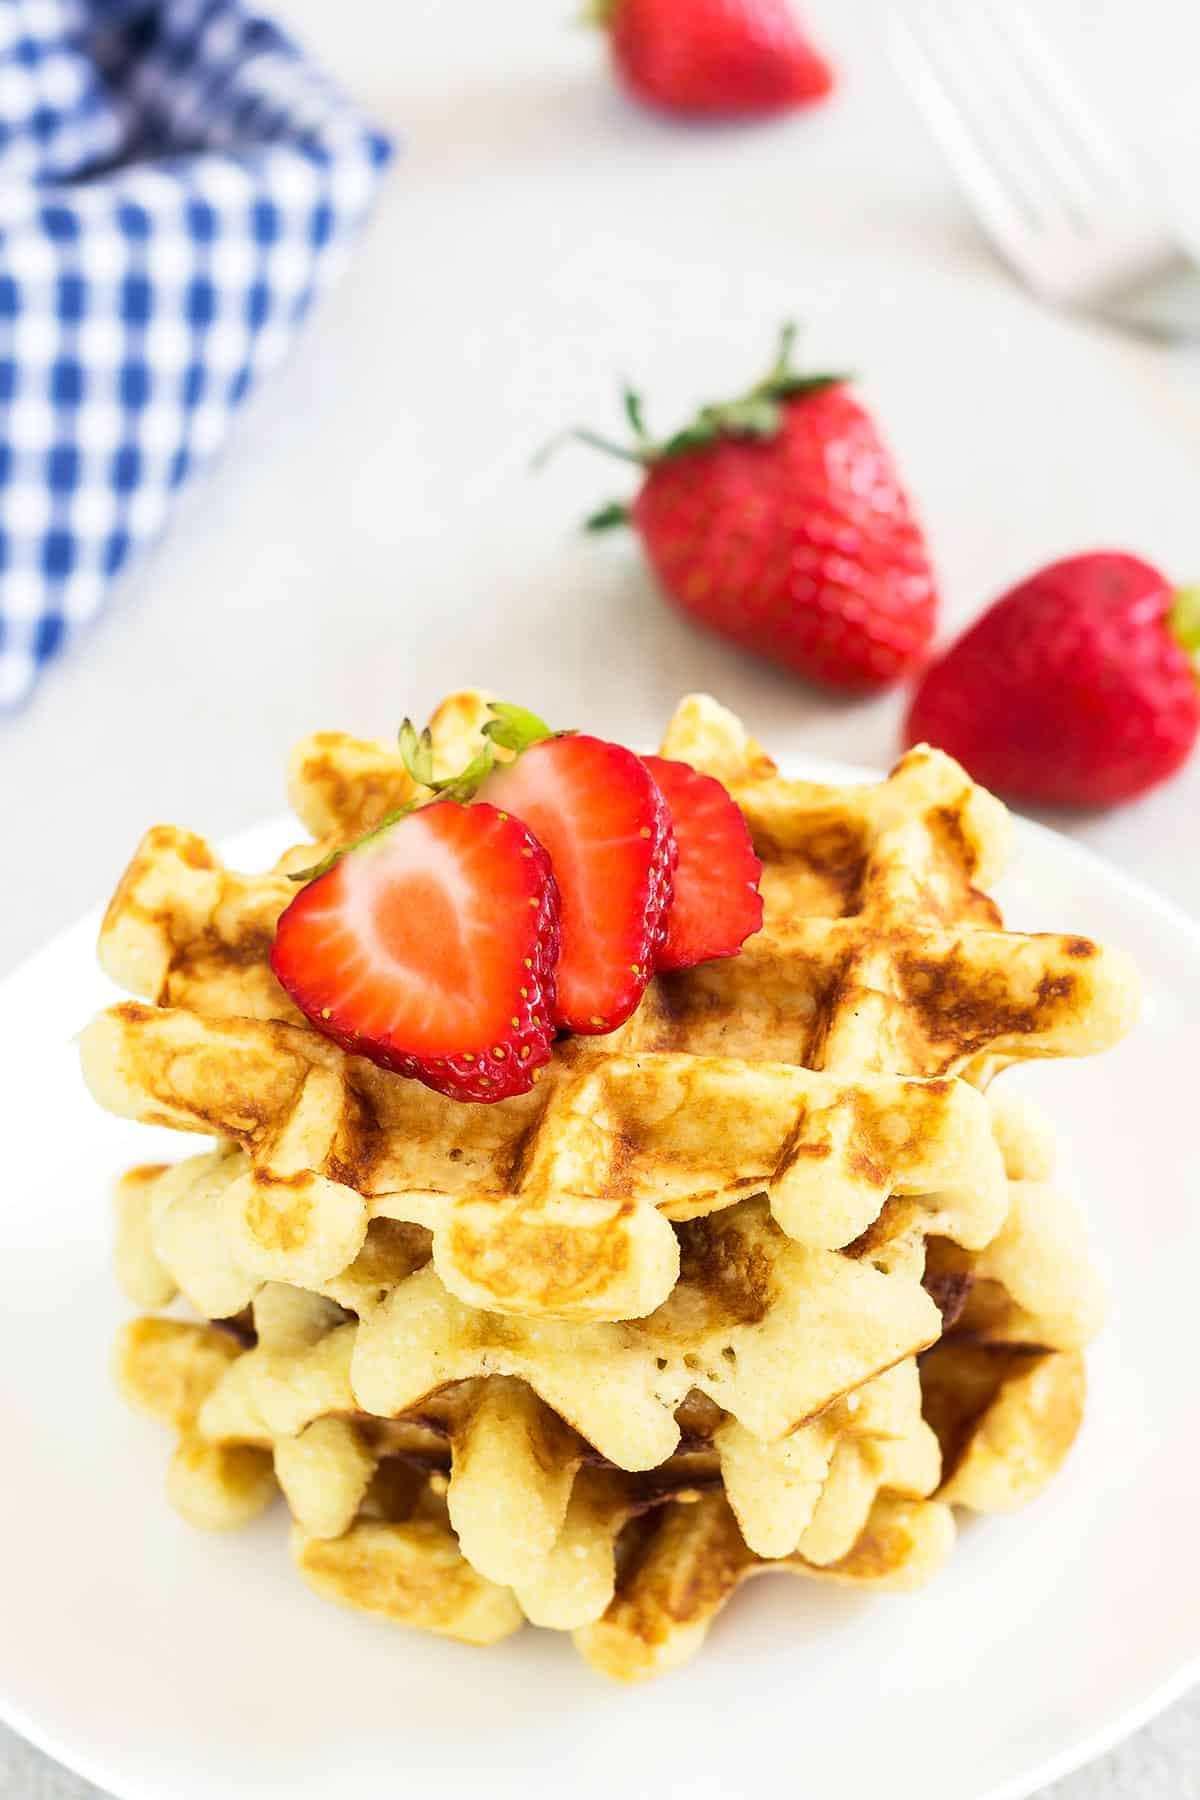 Stack of 3 coconut flour waffles with strawberries on a plate